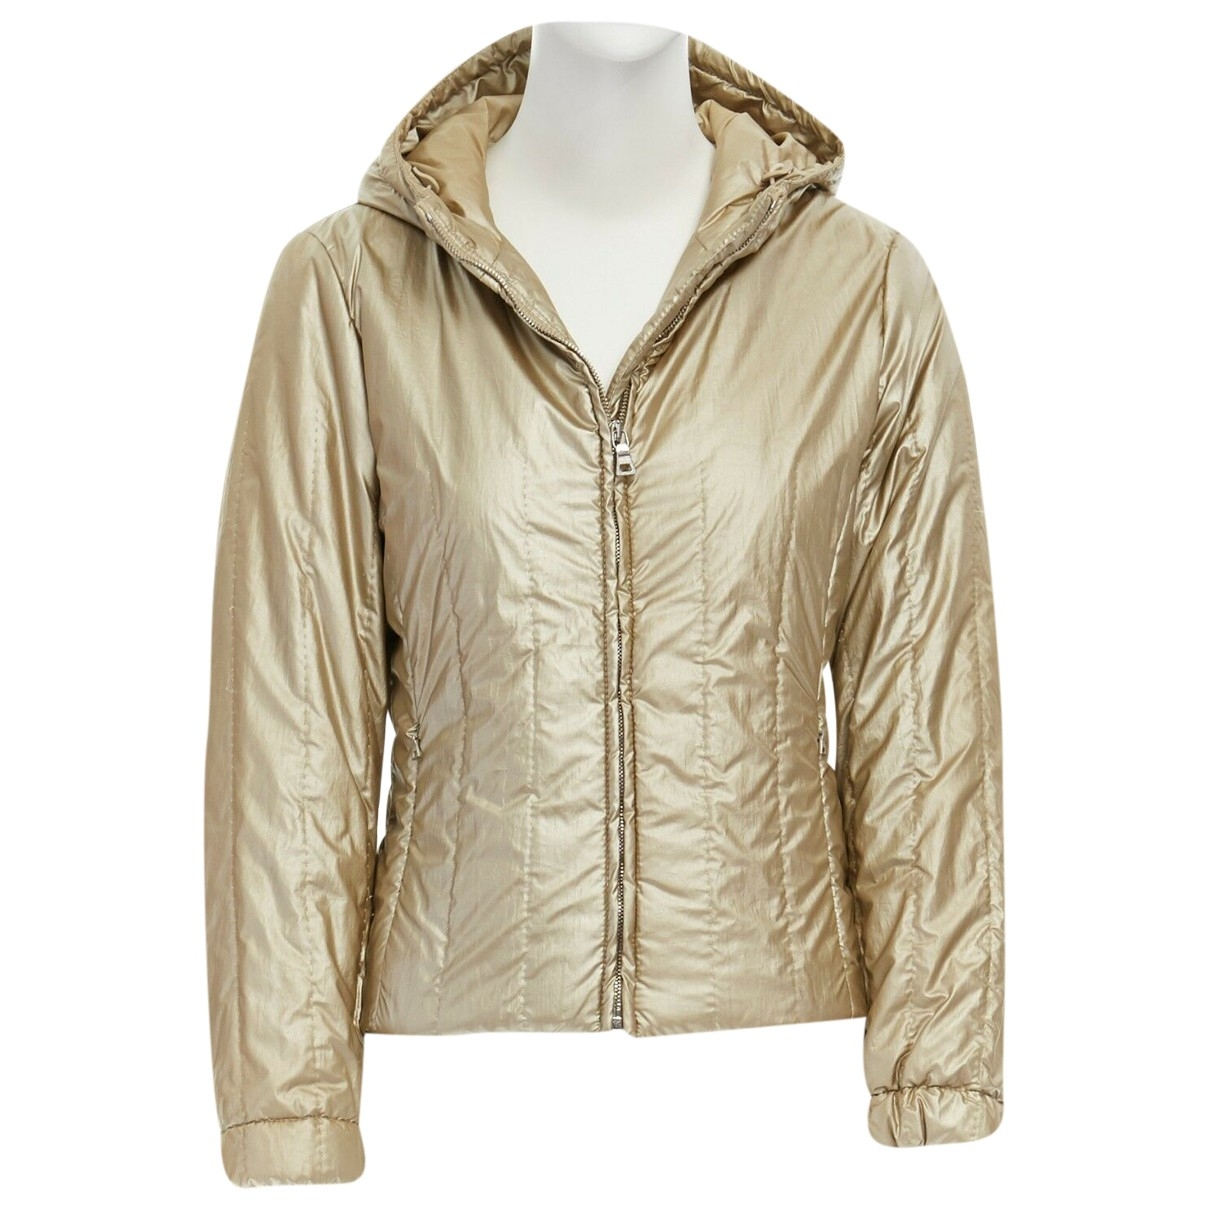 Prada \N Gold jacket for Women 38 IT